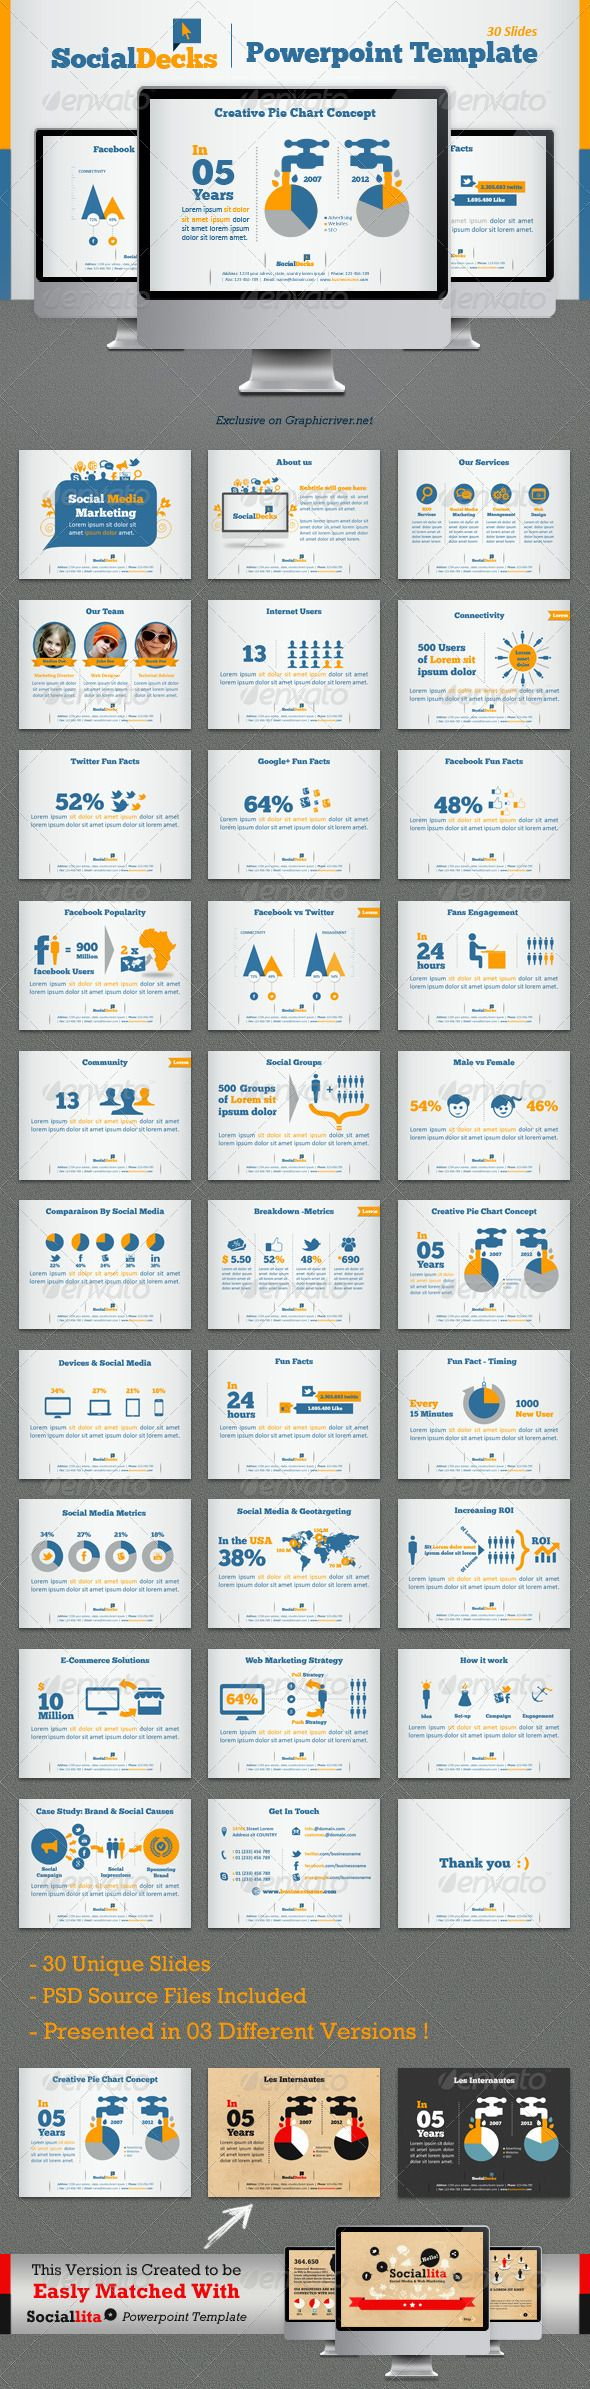 Microsoft powerpoint infographic templates